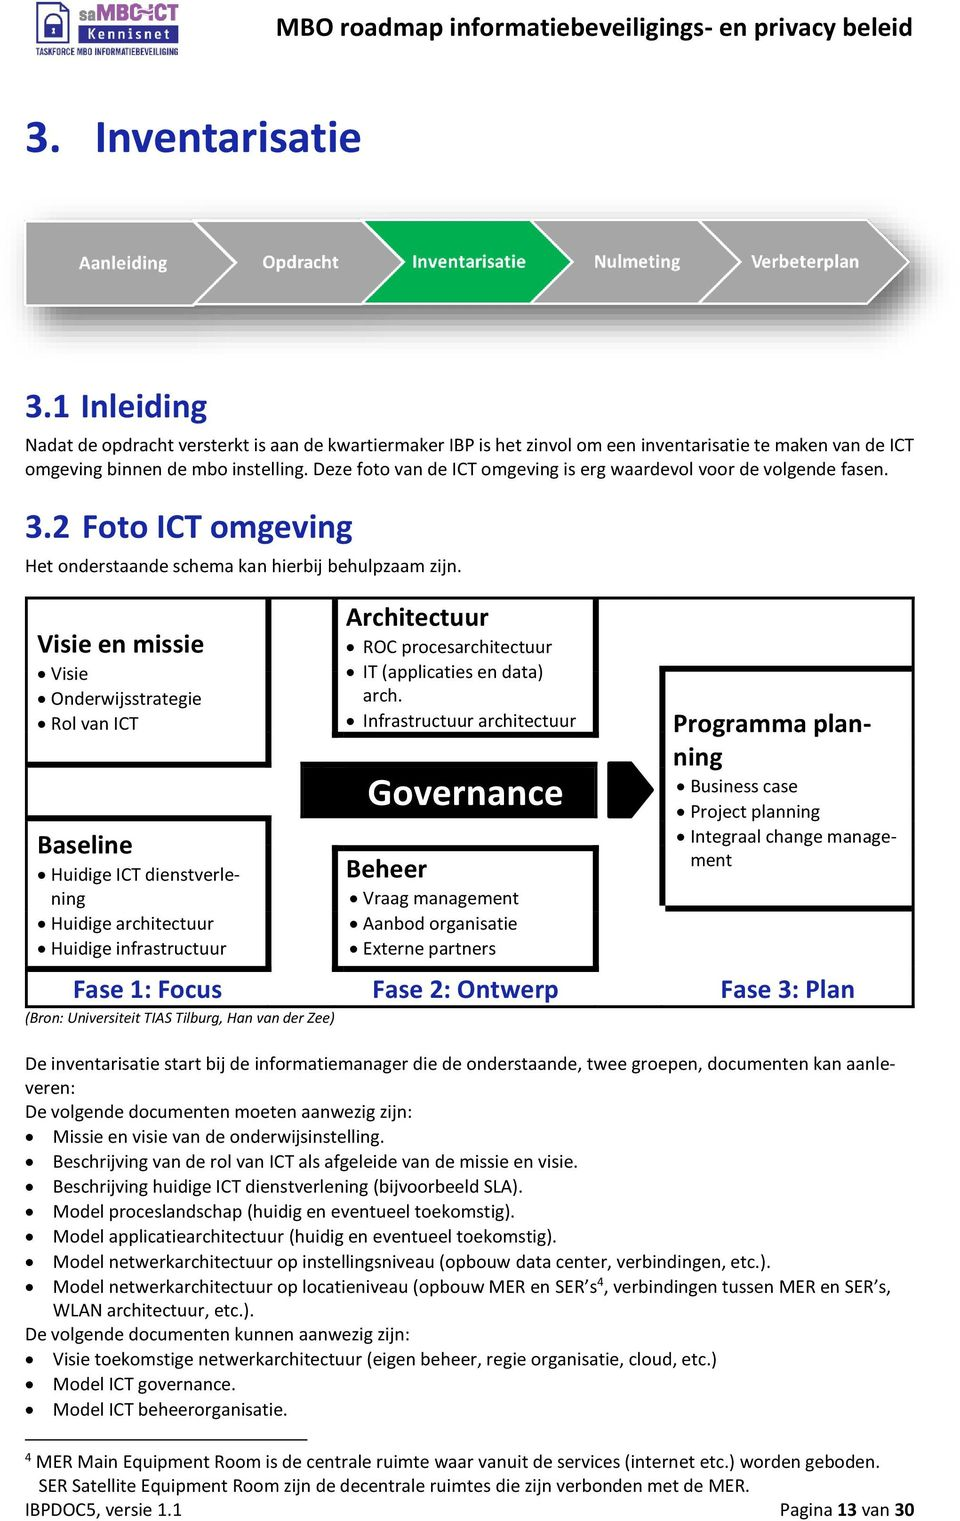 Visie en missie Visie Onderwijsstrategie Rol van ICT Baseline Huidige ICT dienstverlening Huidige architectuur Huidige infrastructuur Architectuur ROC procesarchitectuur IT (applicaties en data) arch.